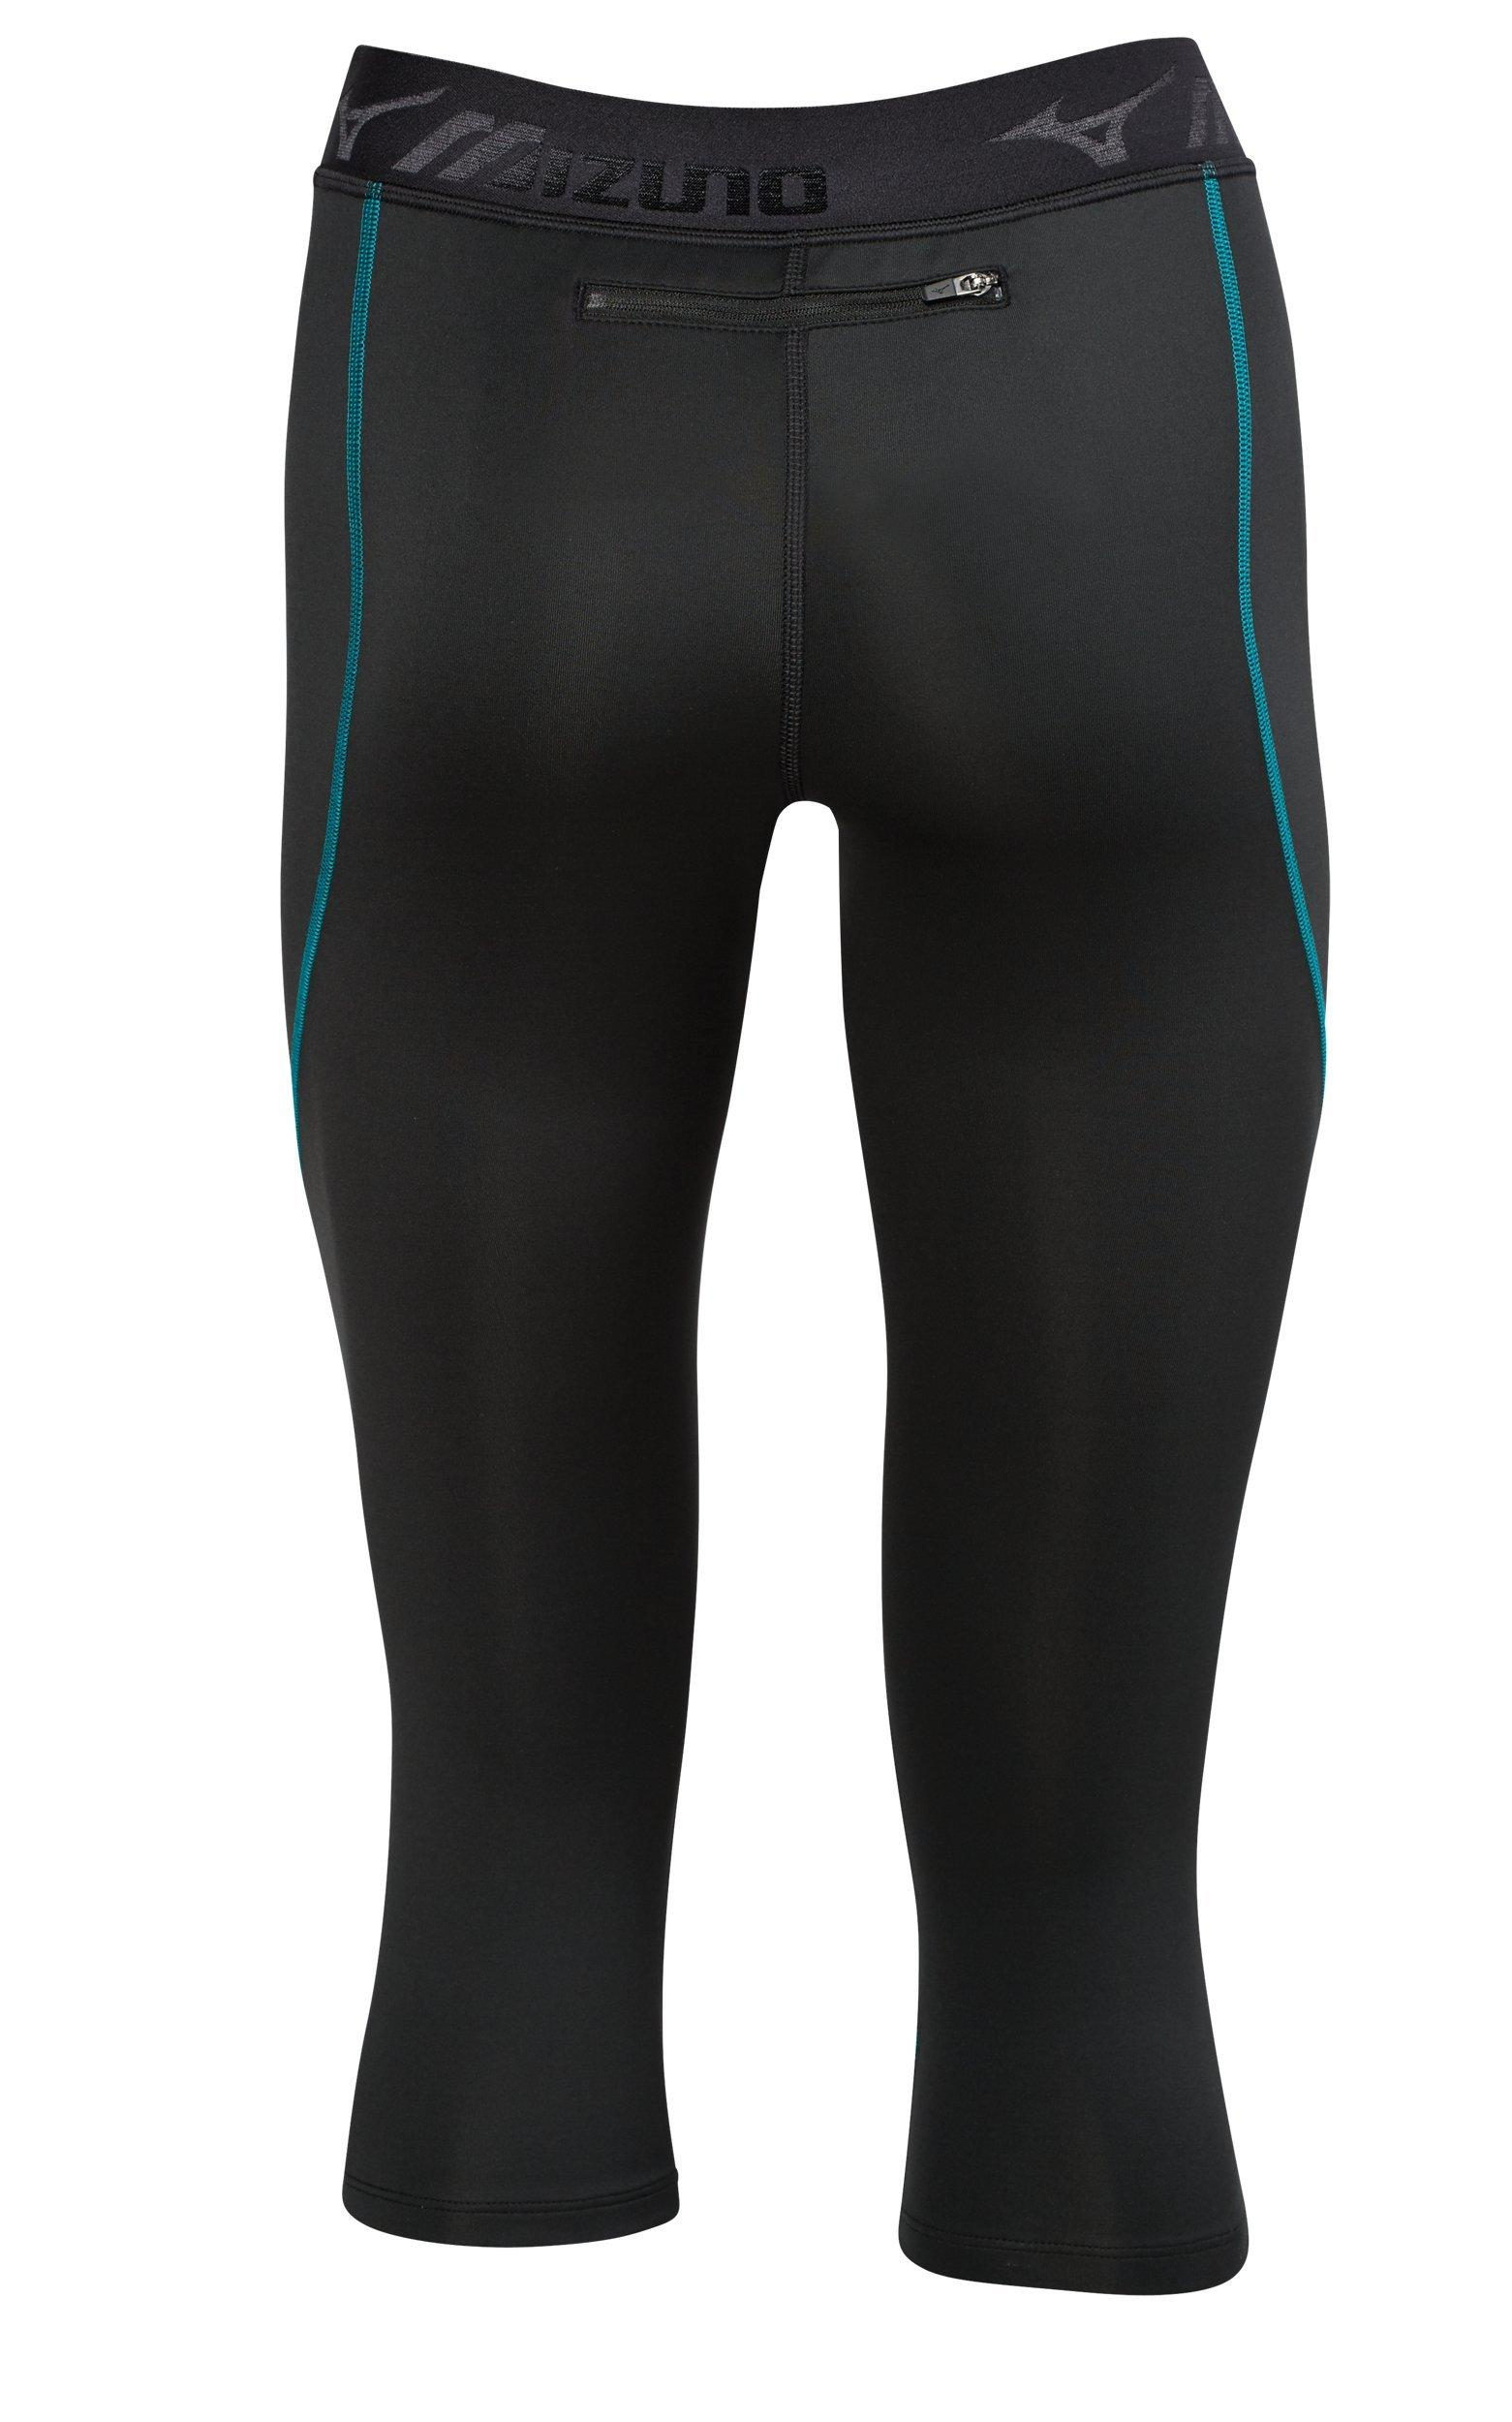 98fdb4a250 Mizuno - Mizuno Womens Running Apparel - Women's Impulse Core 3/4 Tight -  421626 - Walmart.com